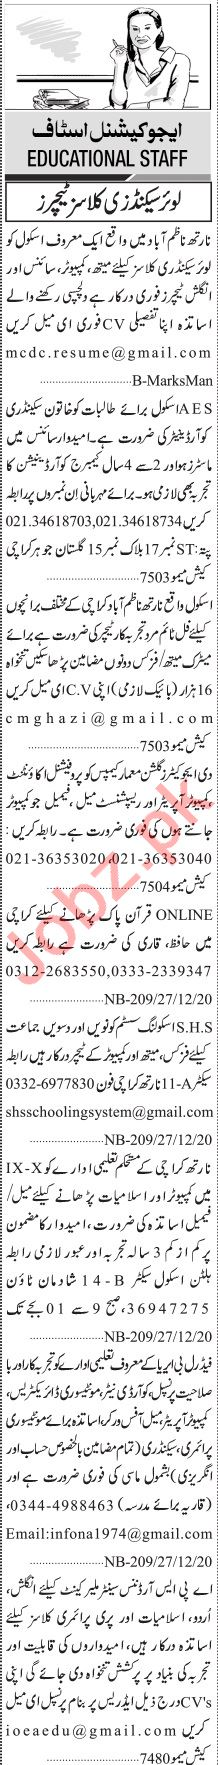 Jang Sunday Classified Ads Dec 2020 for Teaching Staff